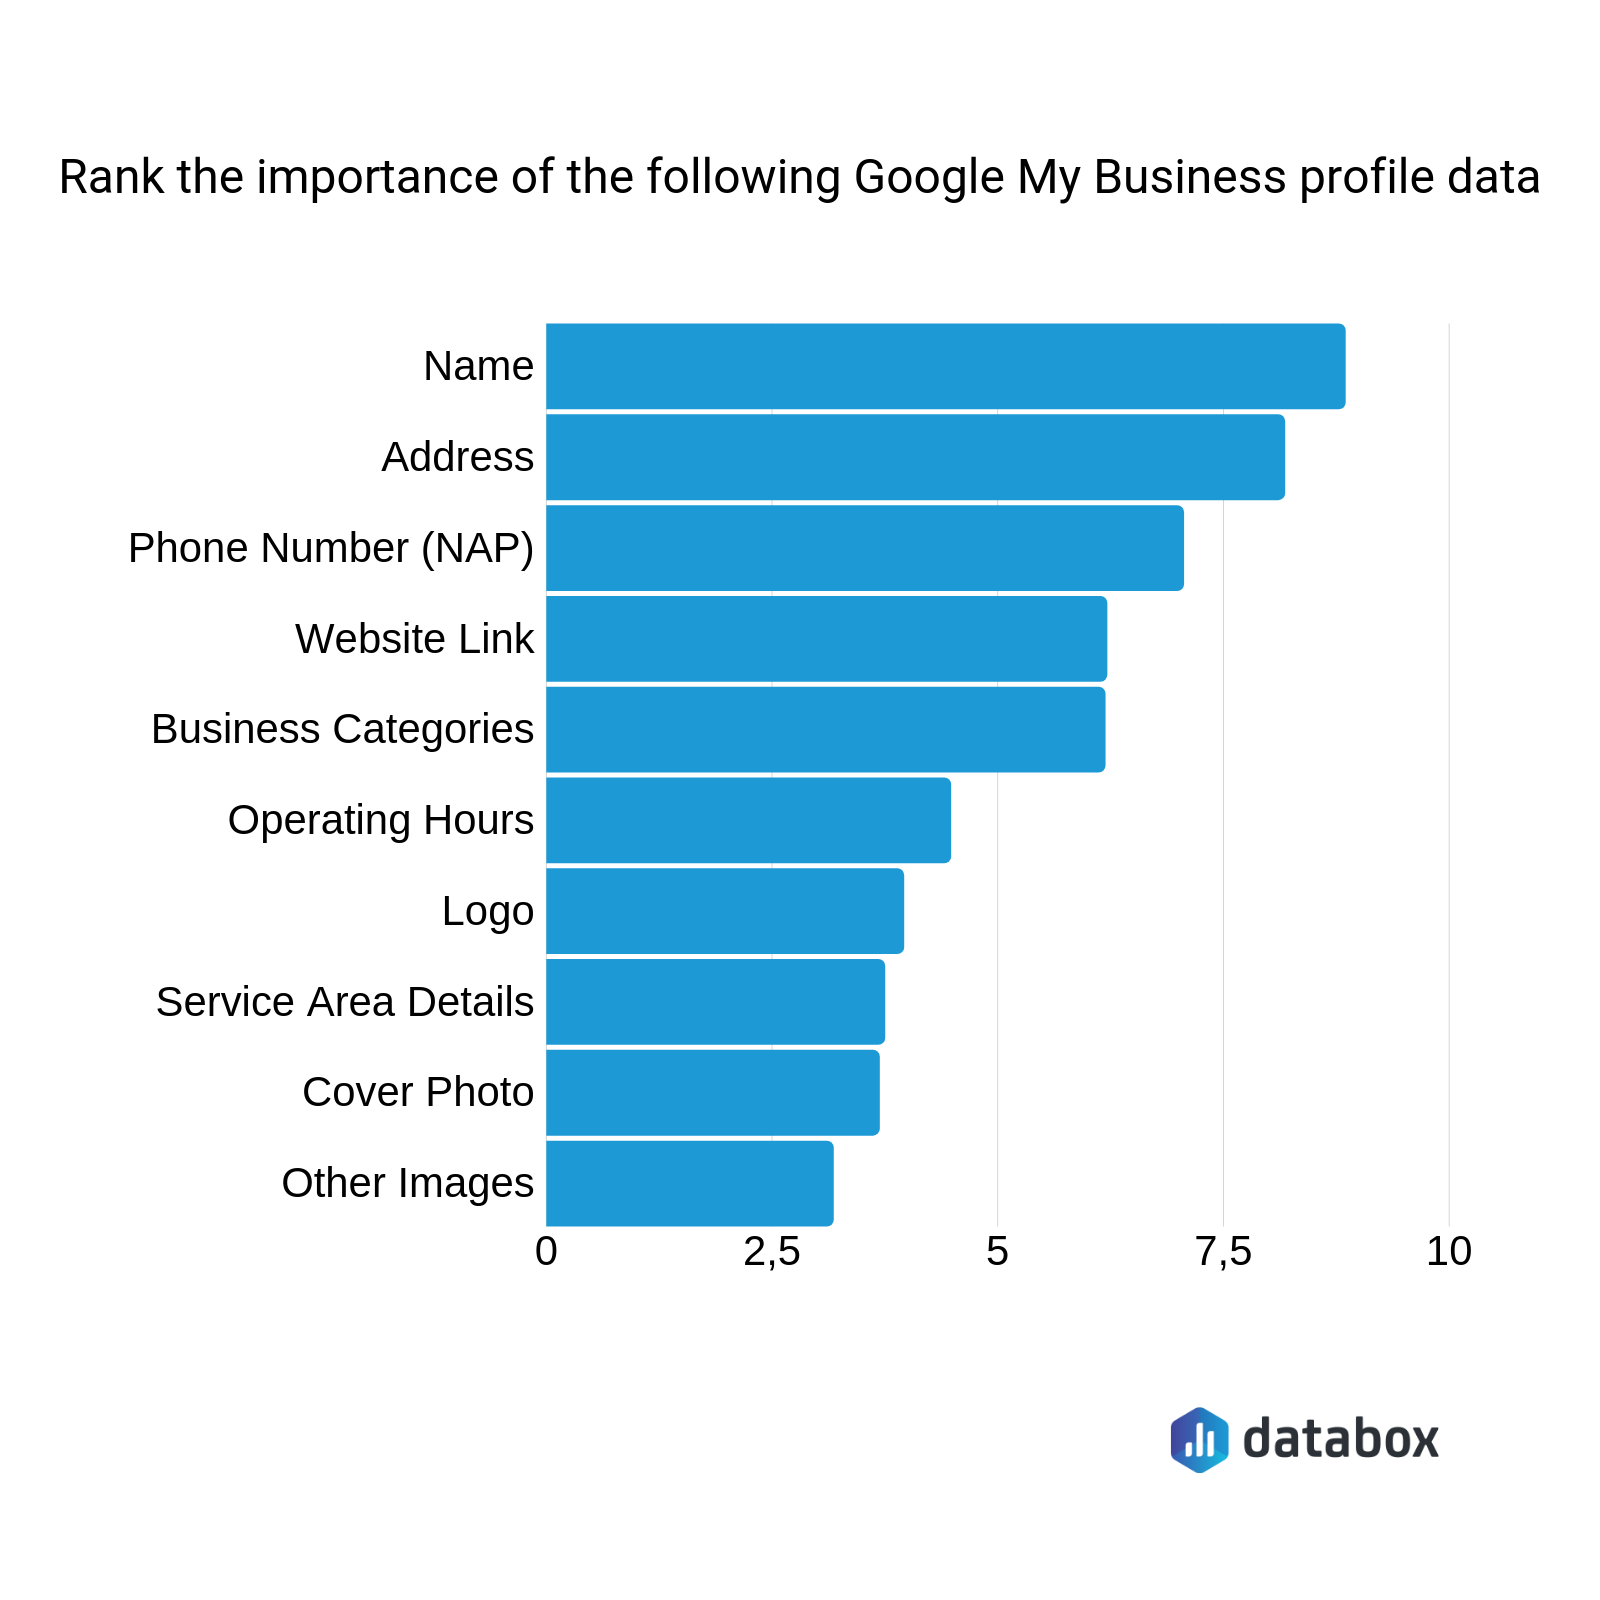 most important Google My Business profile data